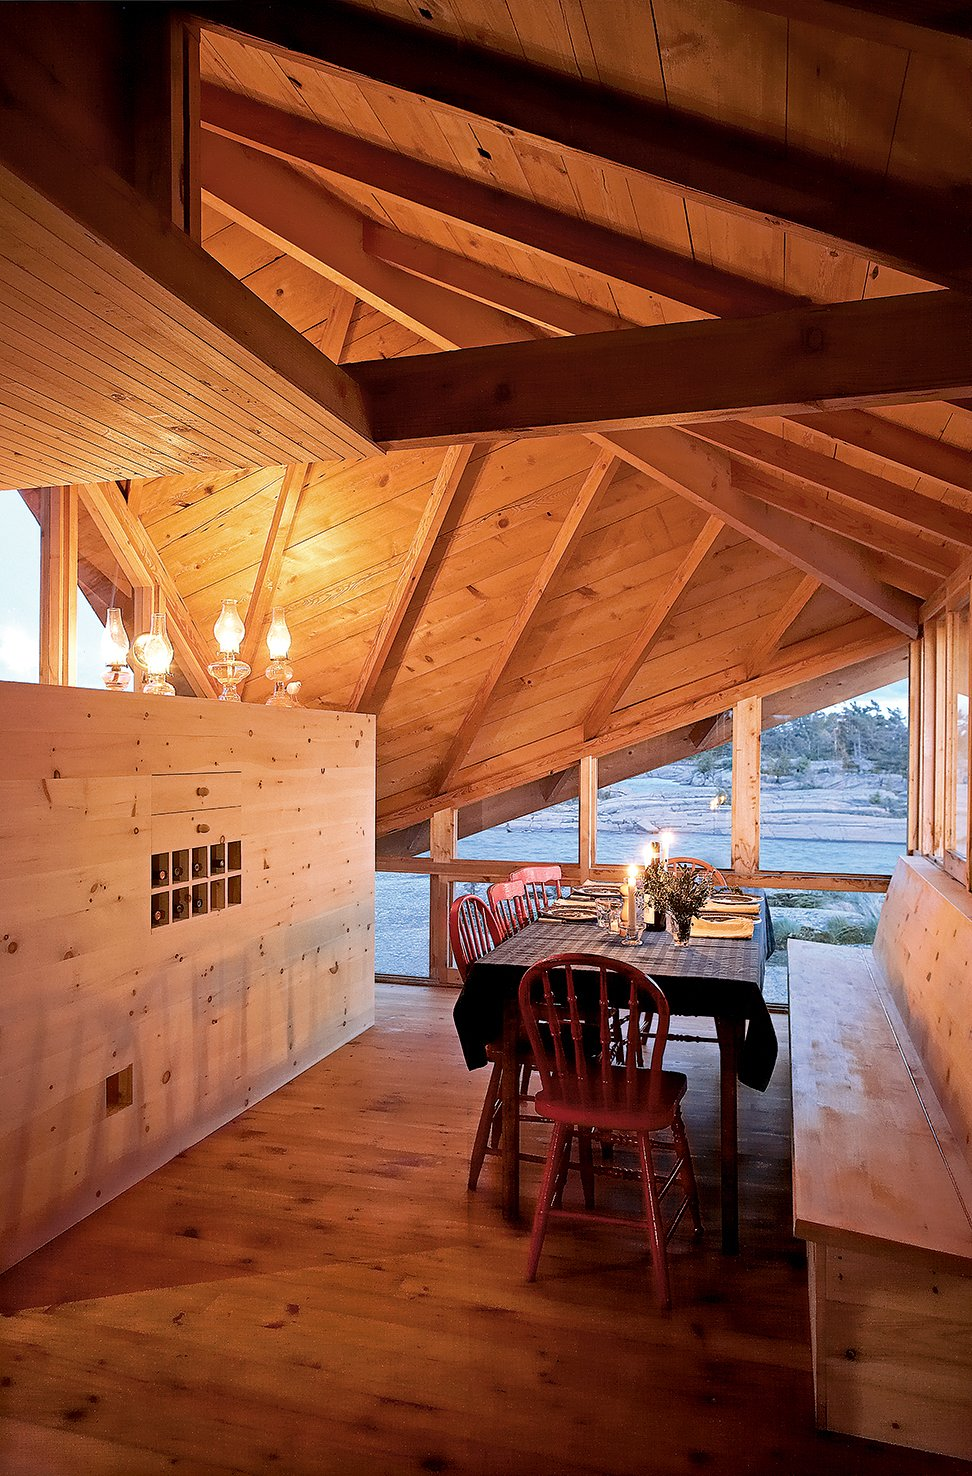 Angled openings in the roofline function as both windows and vents, allowing views and cross-breezes. A dining table completes the nearly all-wood room.